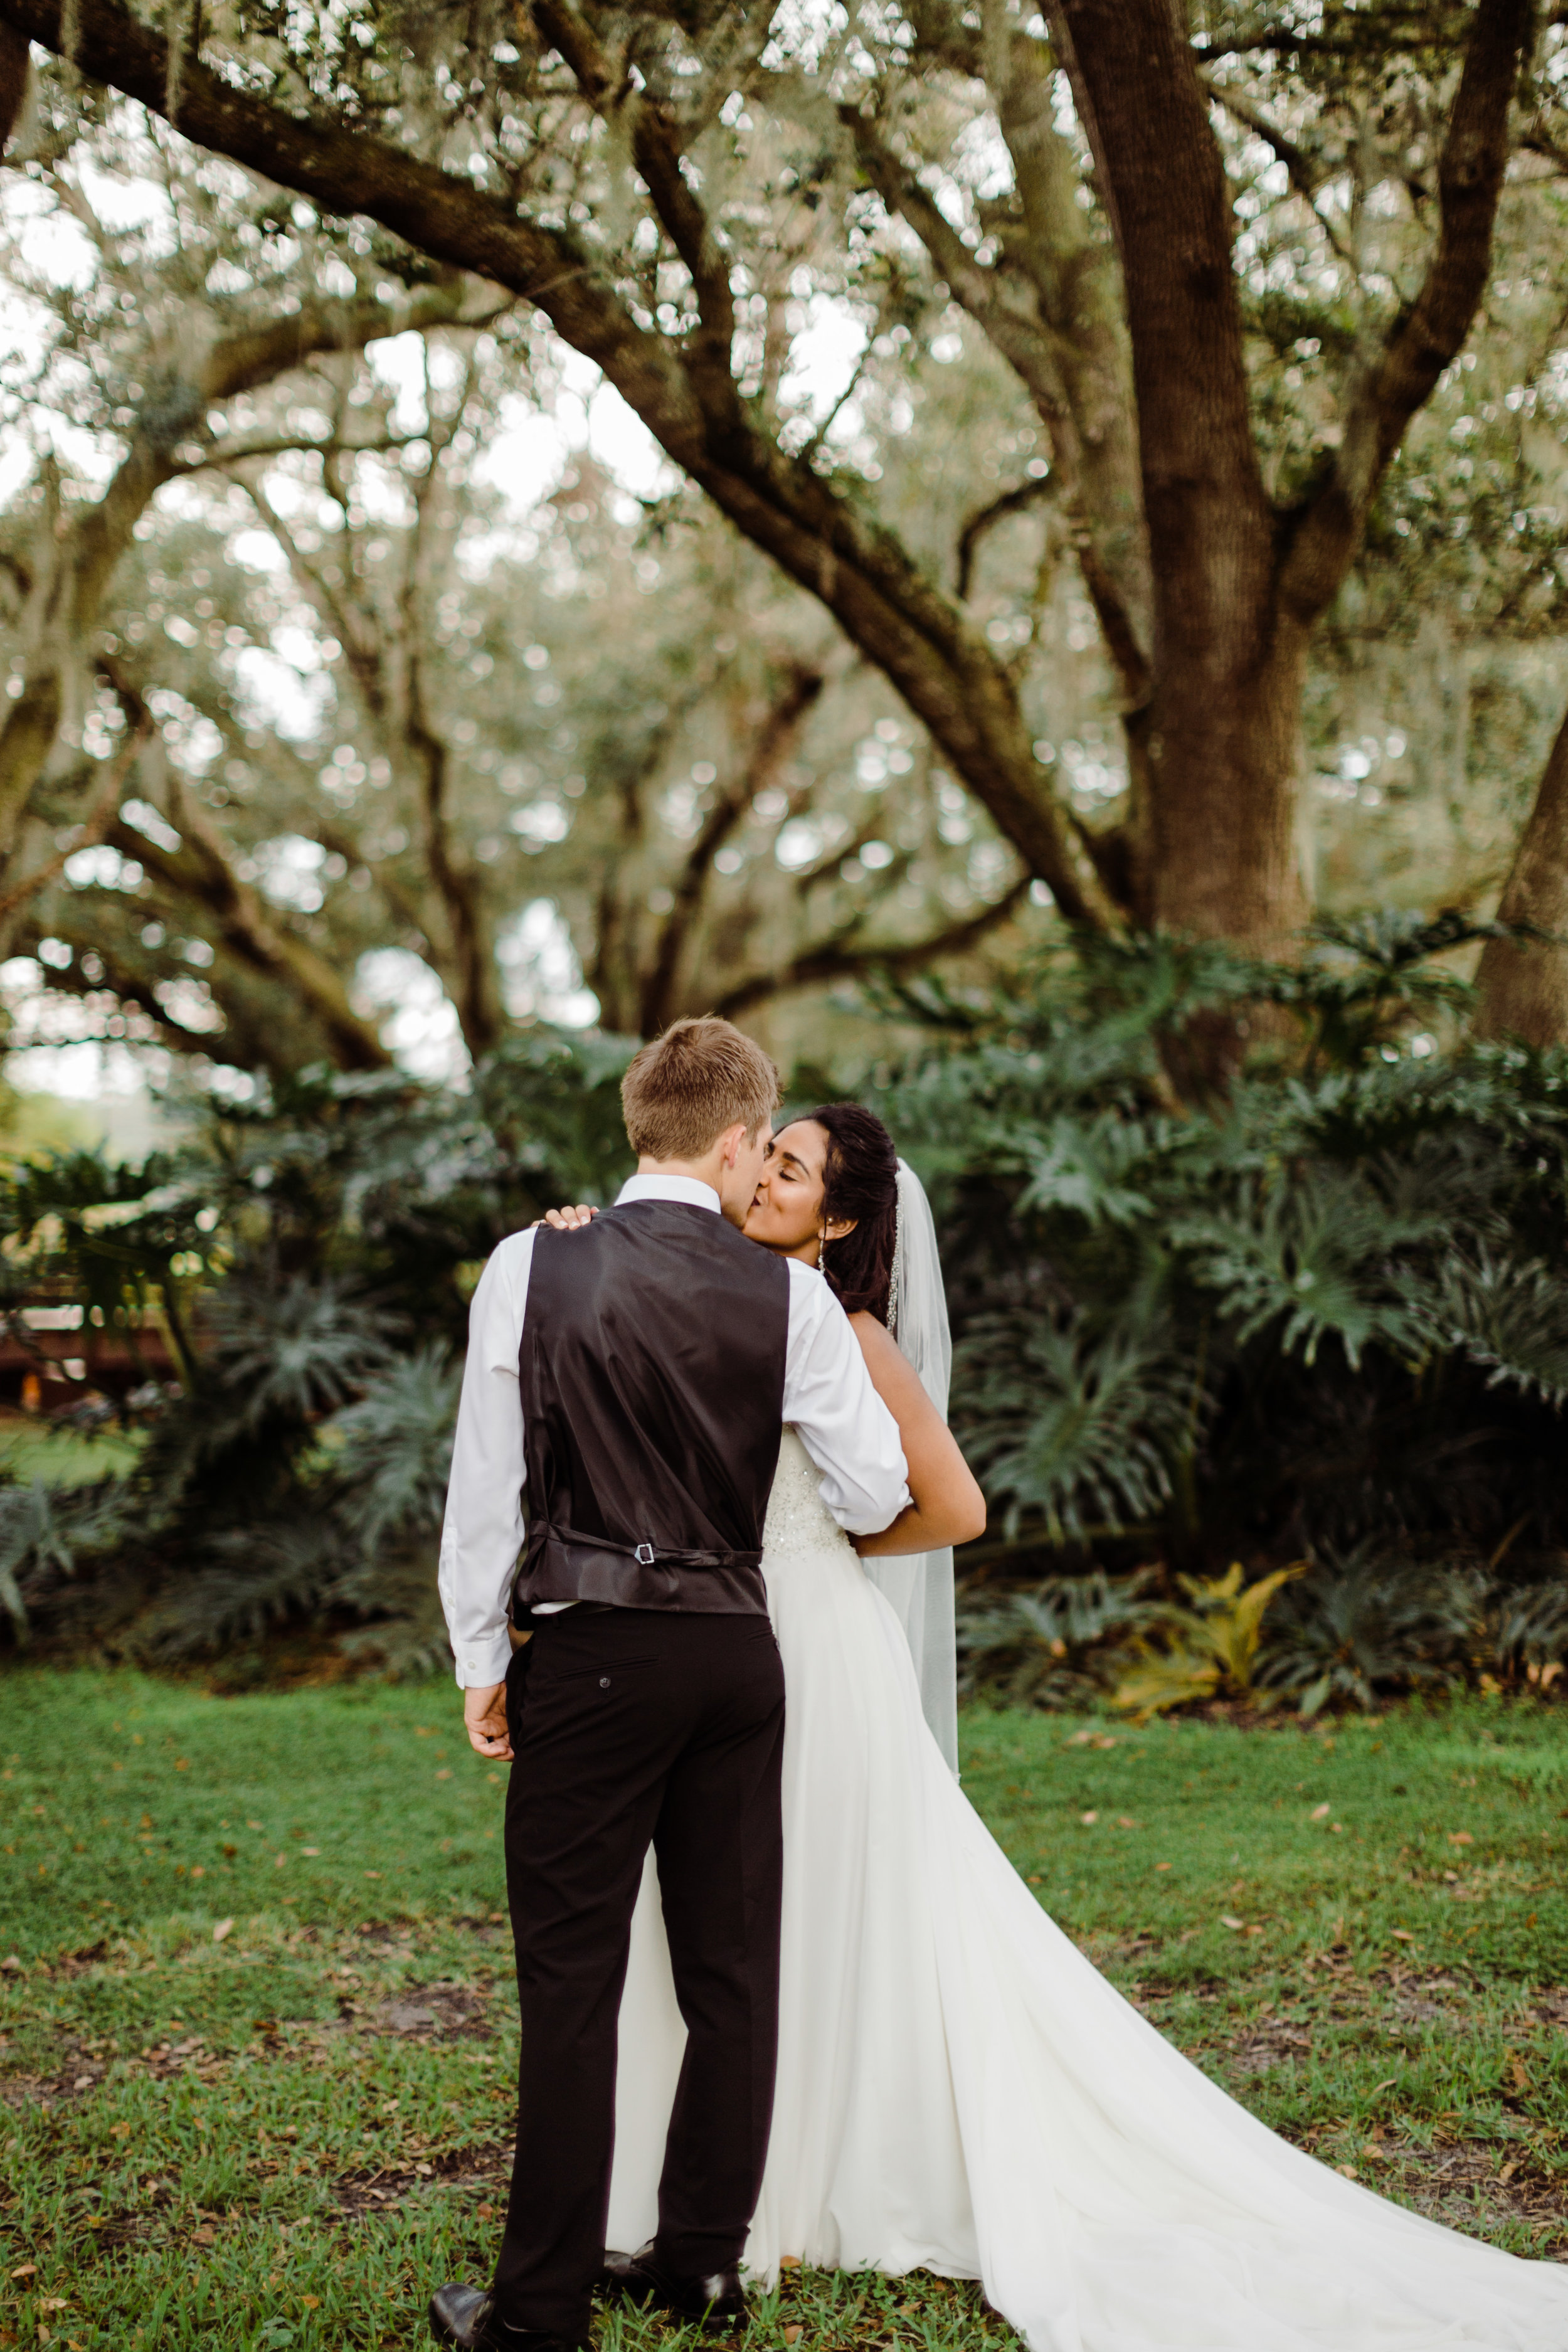 2017.10.08 Zach and Ashley Courson Wedding Club Lake Plantation (575 of 1079).jpg